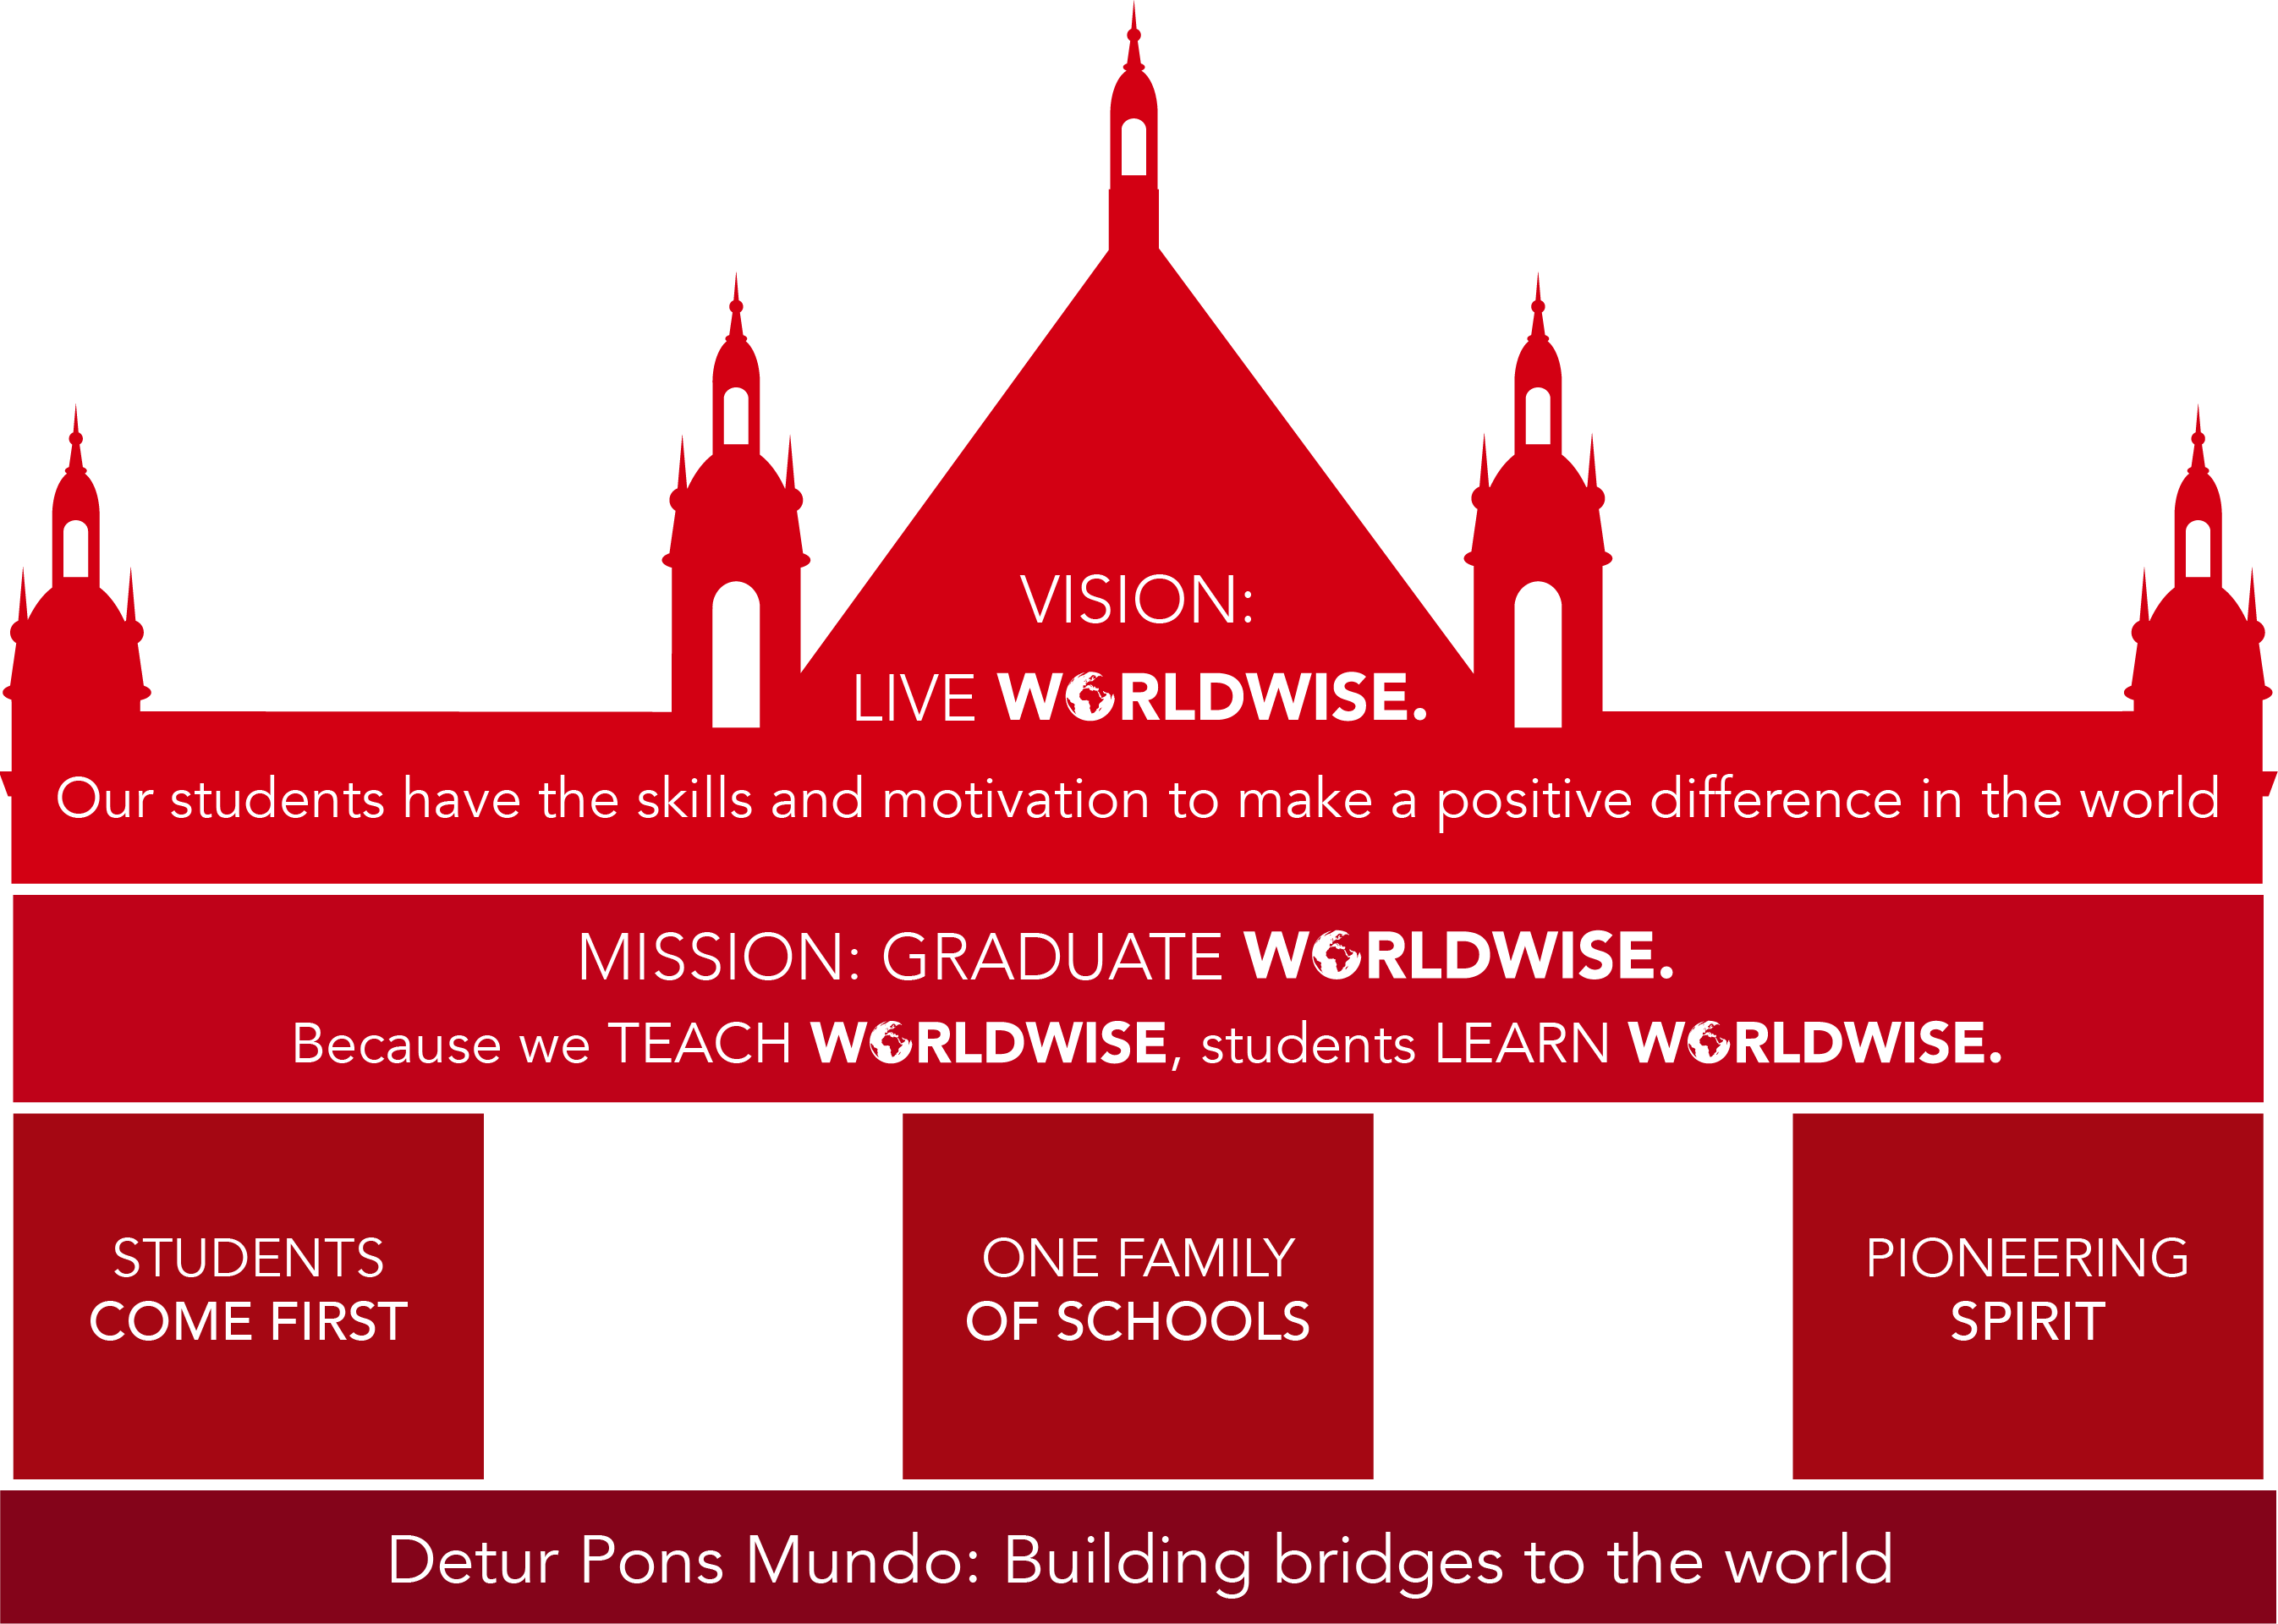 worldwise-dci-vision-Dulwich_College_Shanghai_Pudong